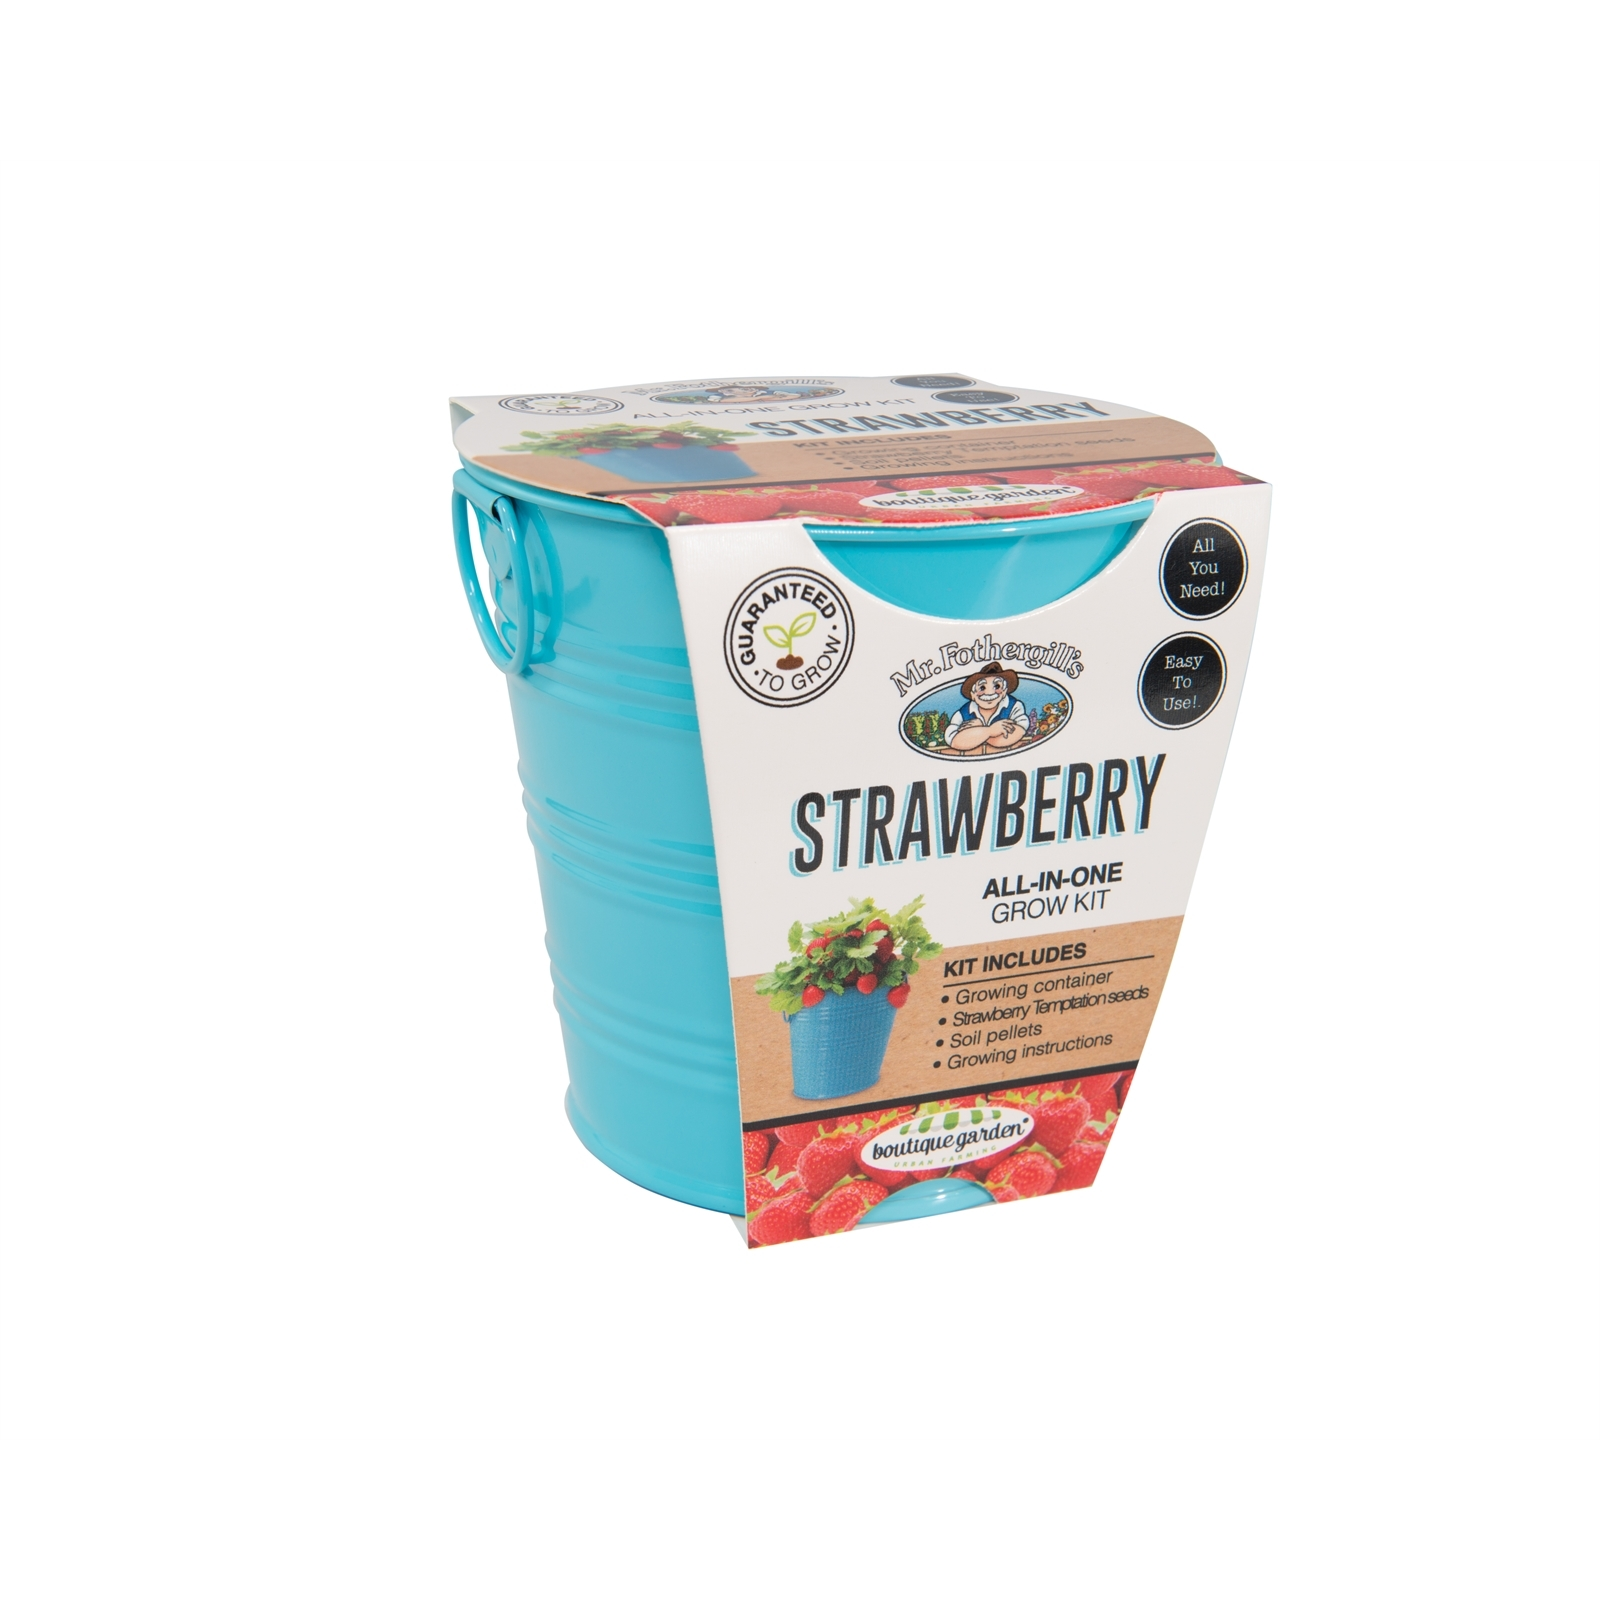 Mr Fothergill's Boutique Gardens Strawberry Grow Kit